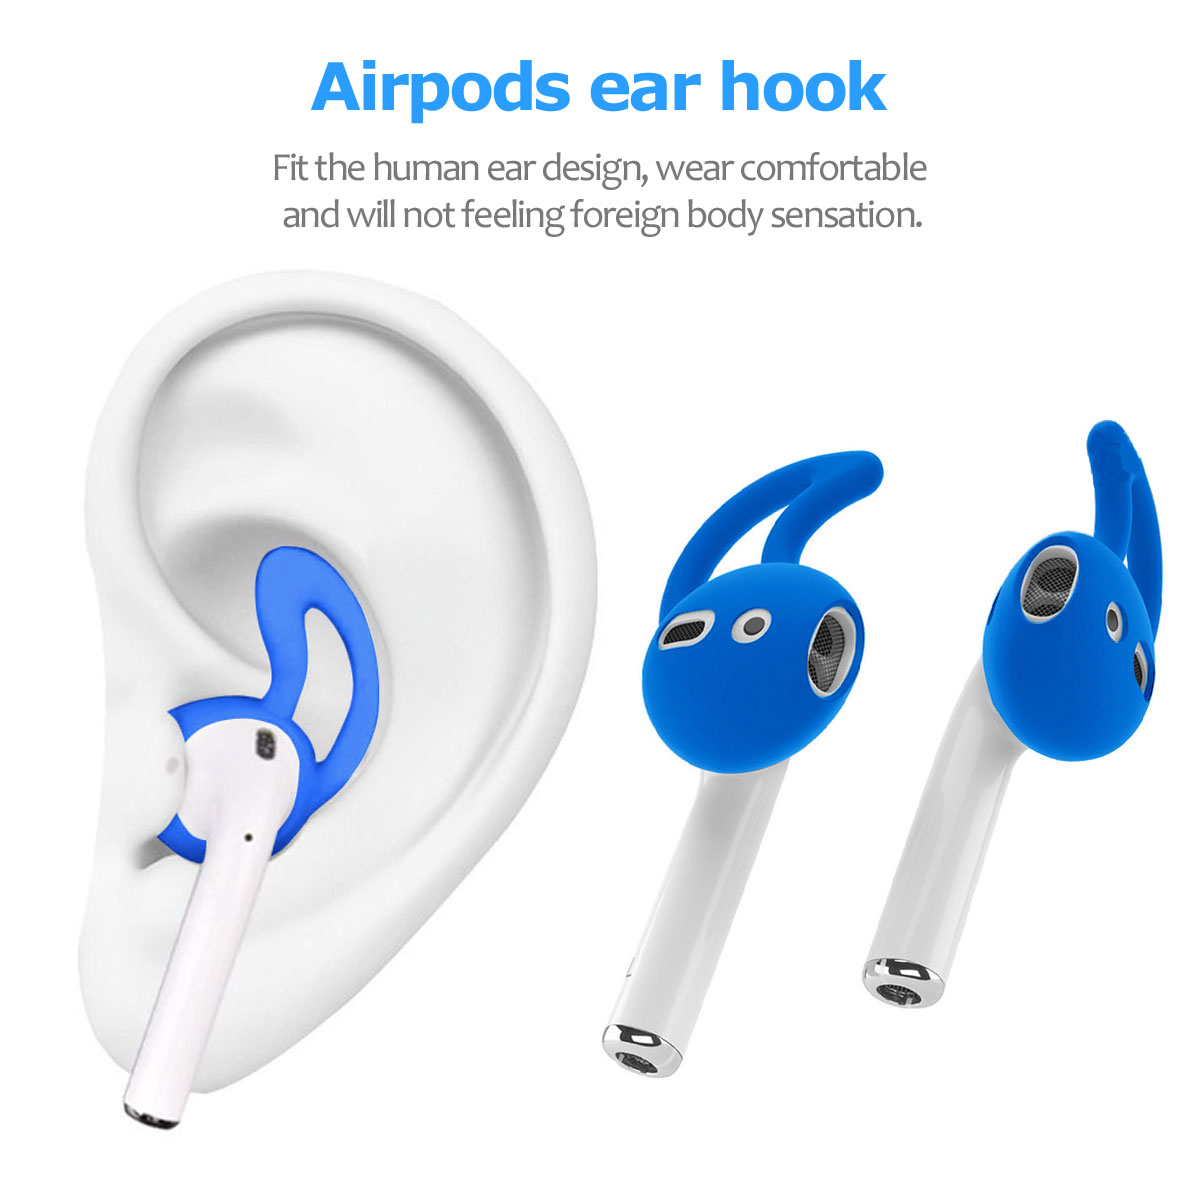 Silicone-Ruggged-Case-Cover-Earbuds-For-Apple-AirPods-2nd-Gen-Accessories-2019 thumbnail 40